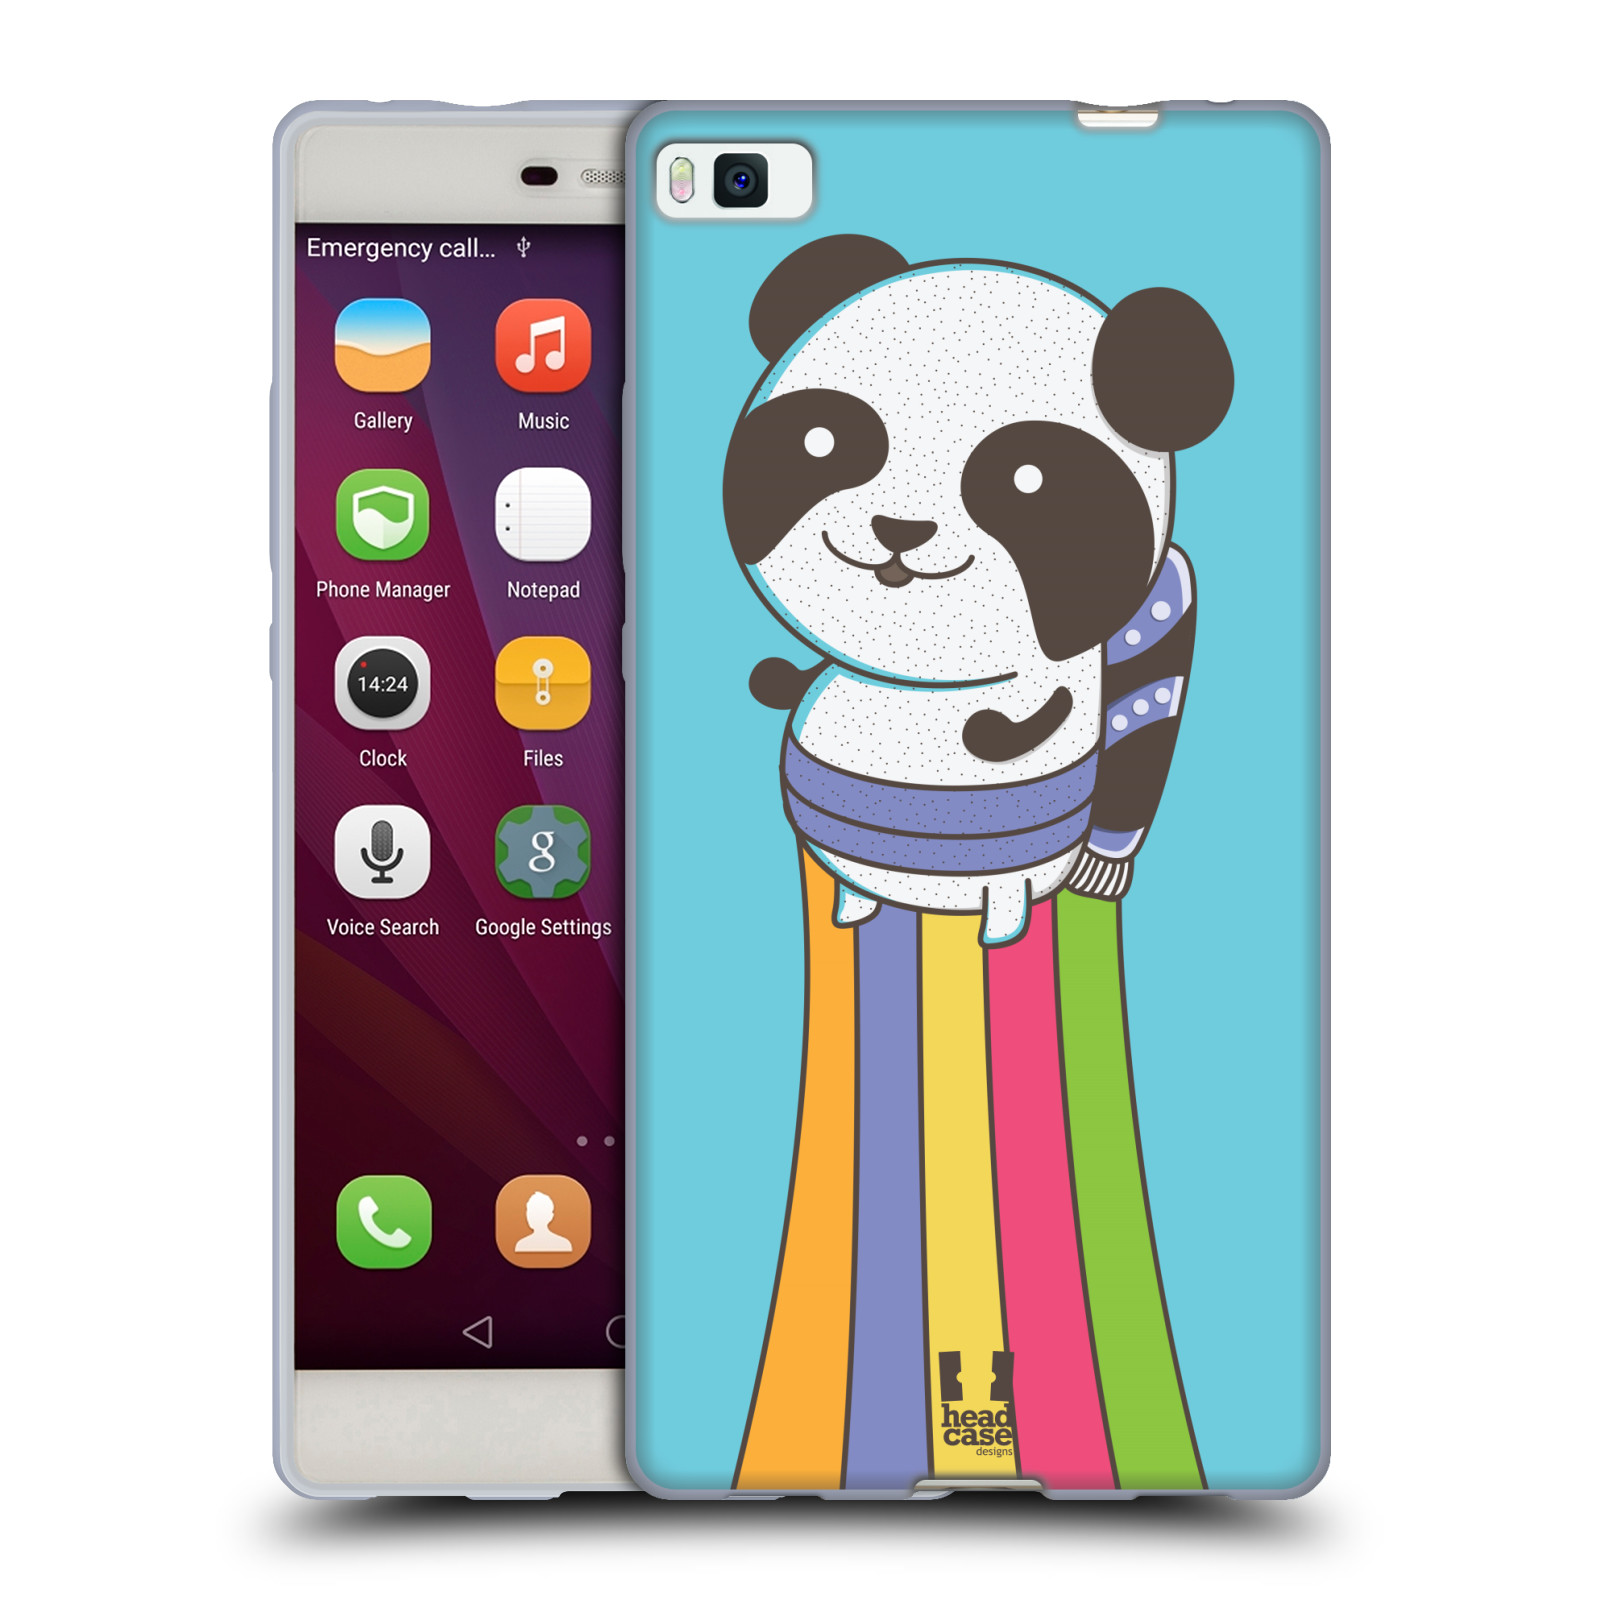 HEAD-CASE-DESIGNS-JETPACK-TIERE-SOFT-GEL-HULLE-FUR-HUAWEI-HANDYS